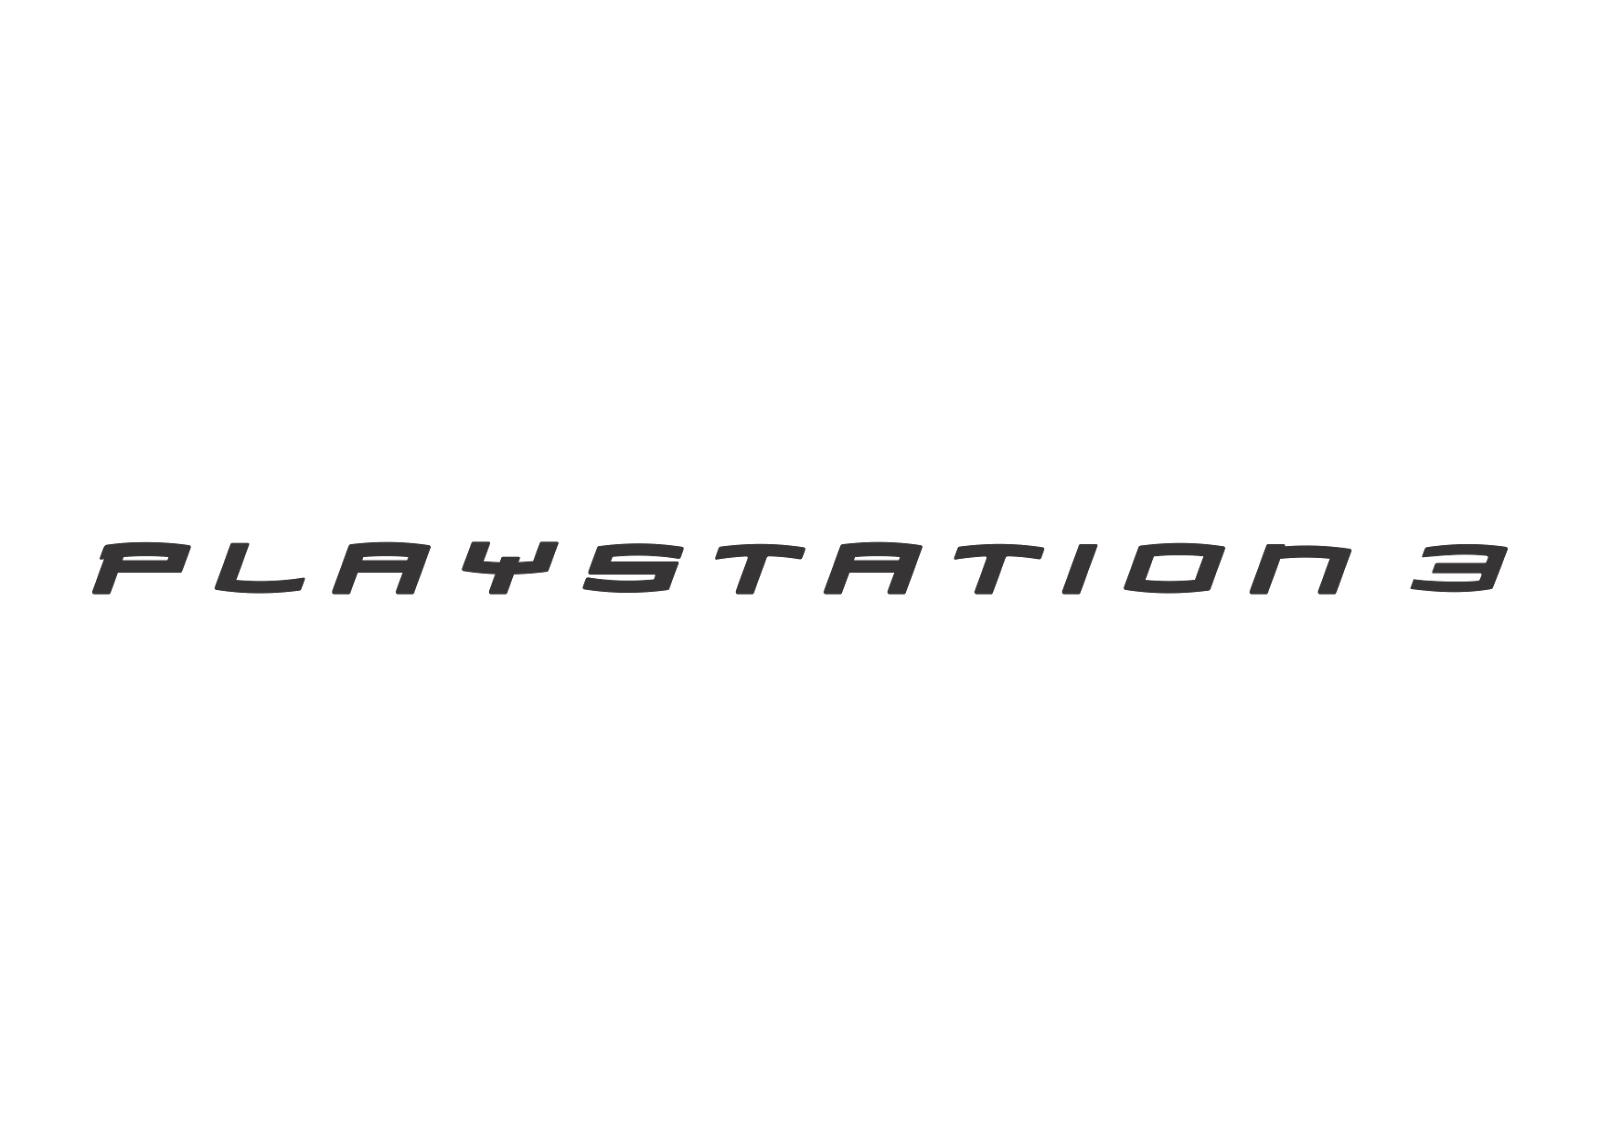 Sony playstation 3 Logo Vector ~ Format Cdr, Ai, Eps, Svg ...